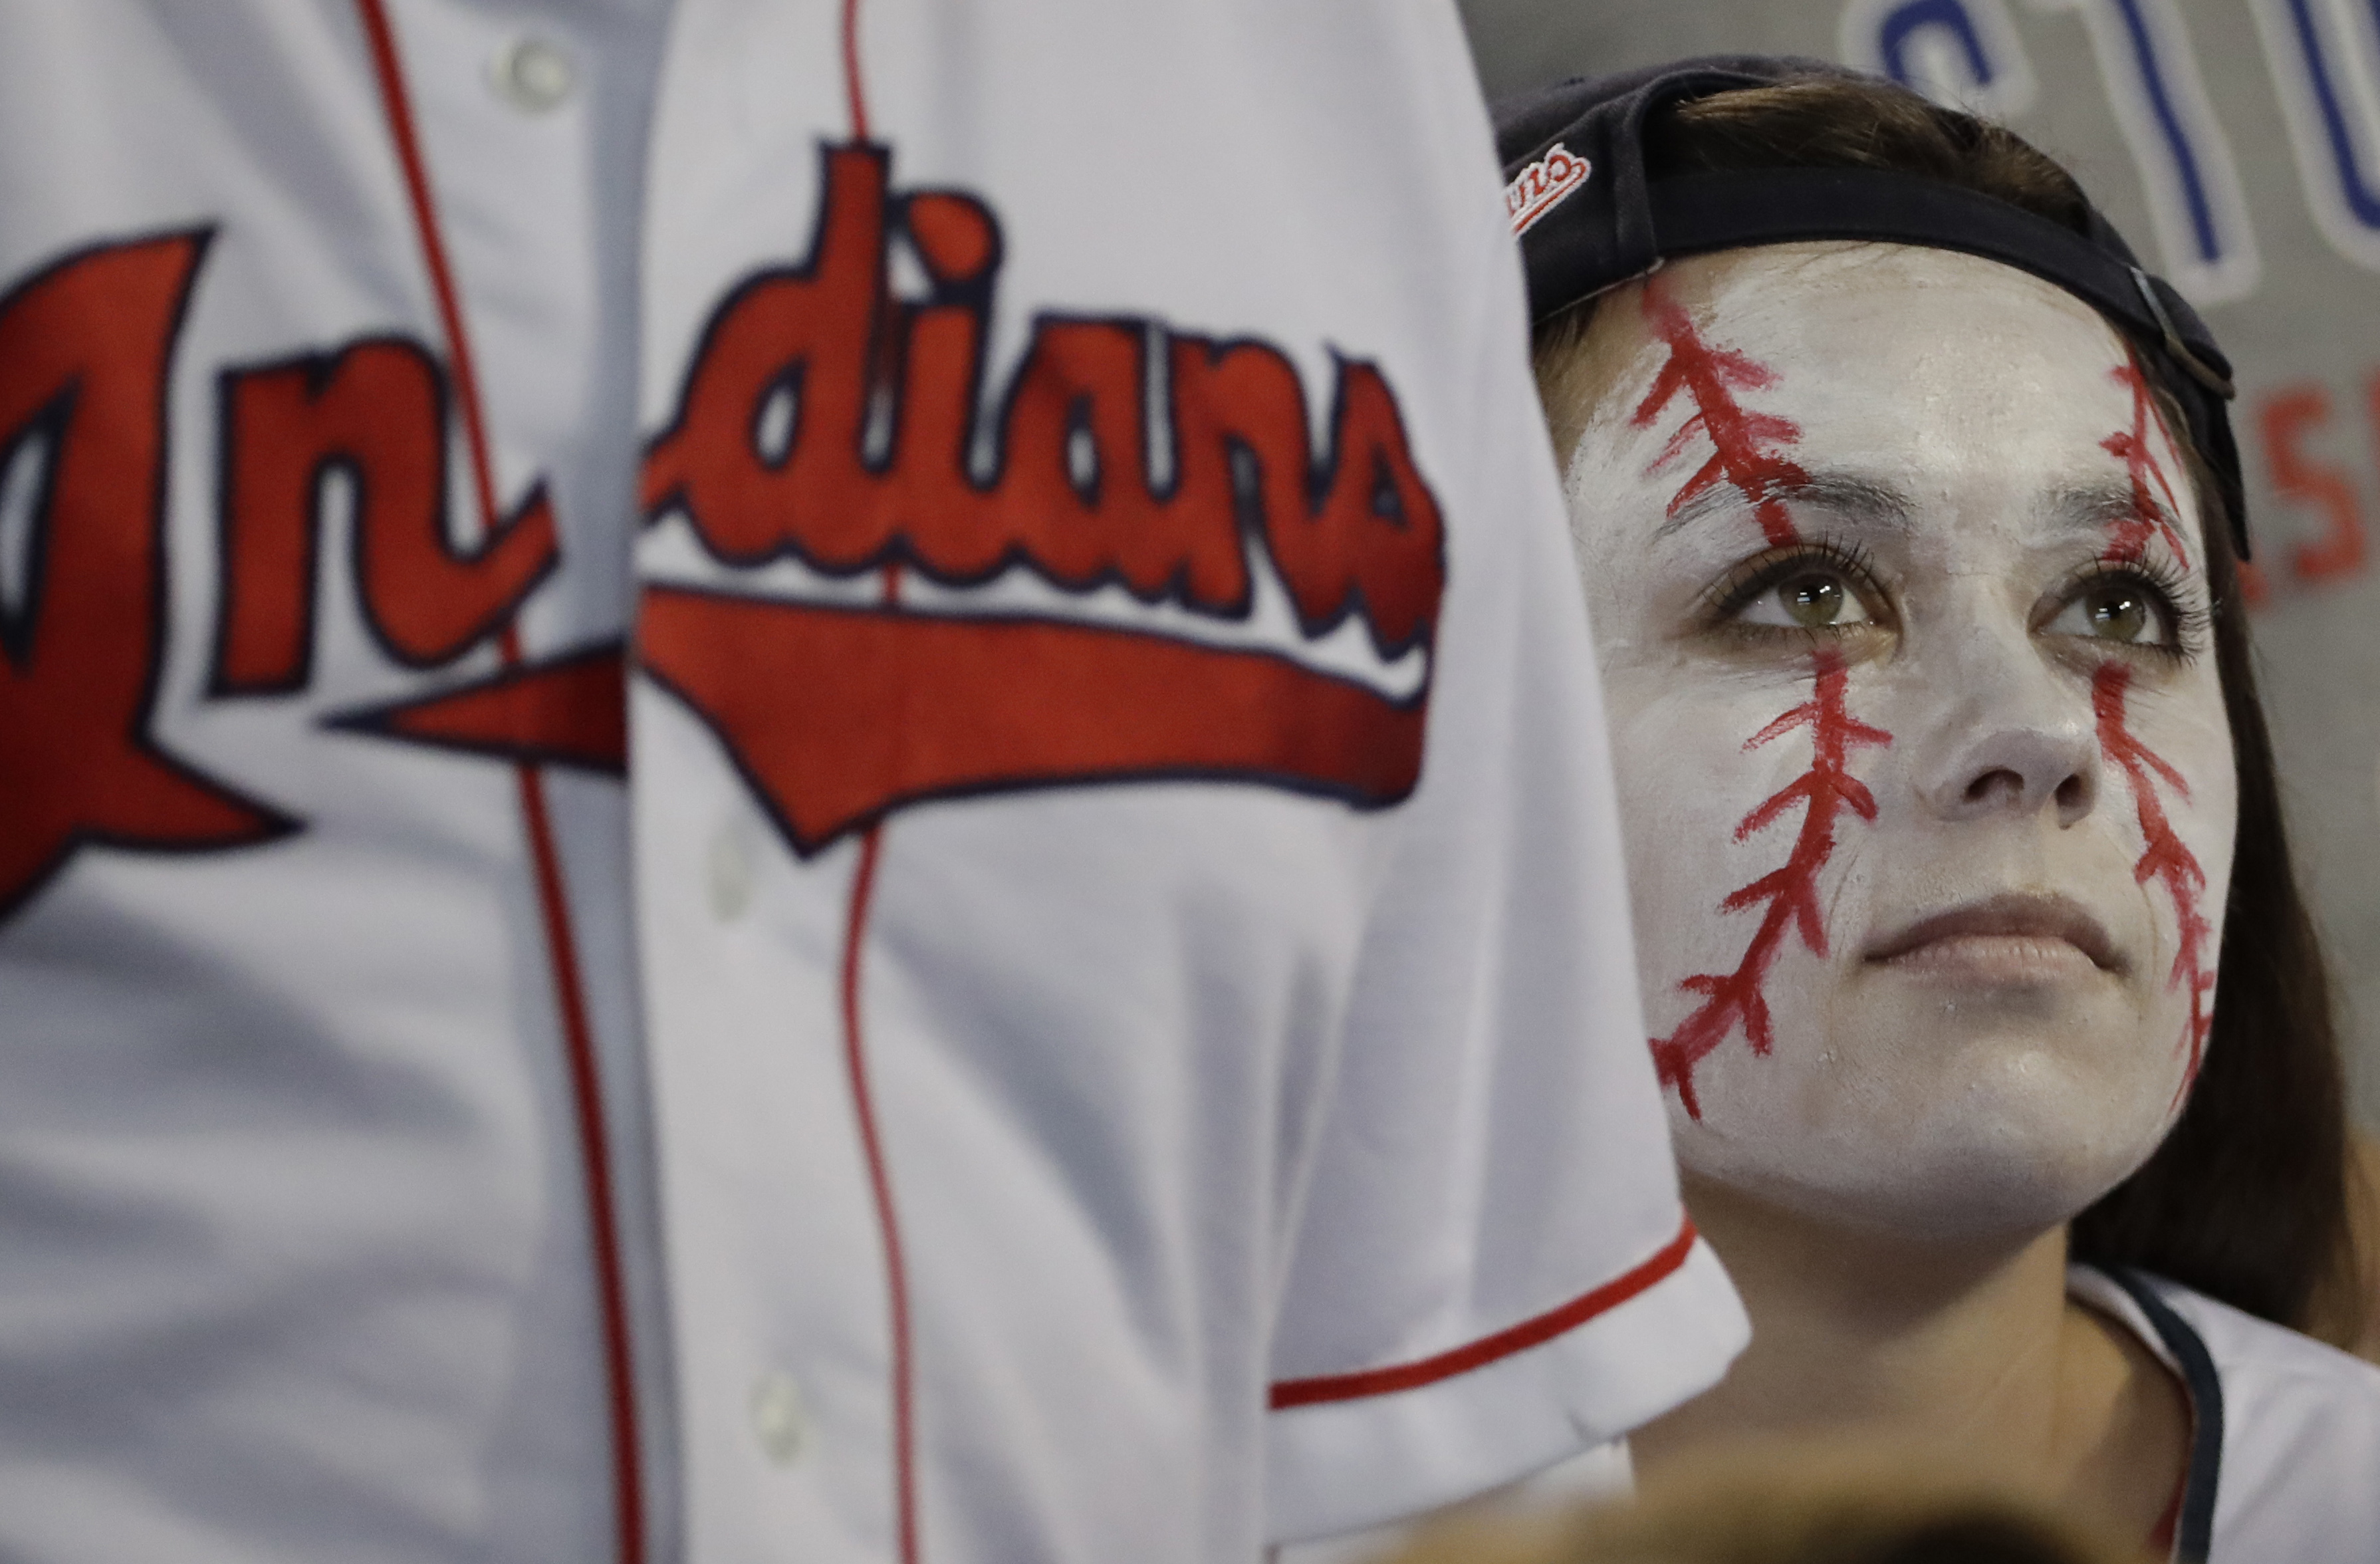 FILE - In this Nov. 1, 2016, file photo, a Cleveland Indians fan reacts during the sixth inning of Game 6 of the Major League Baseball World Series against the Chicago Cubs in Cleveland. The Indians went on to lose the Series in seven games. ESPN and The